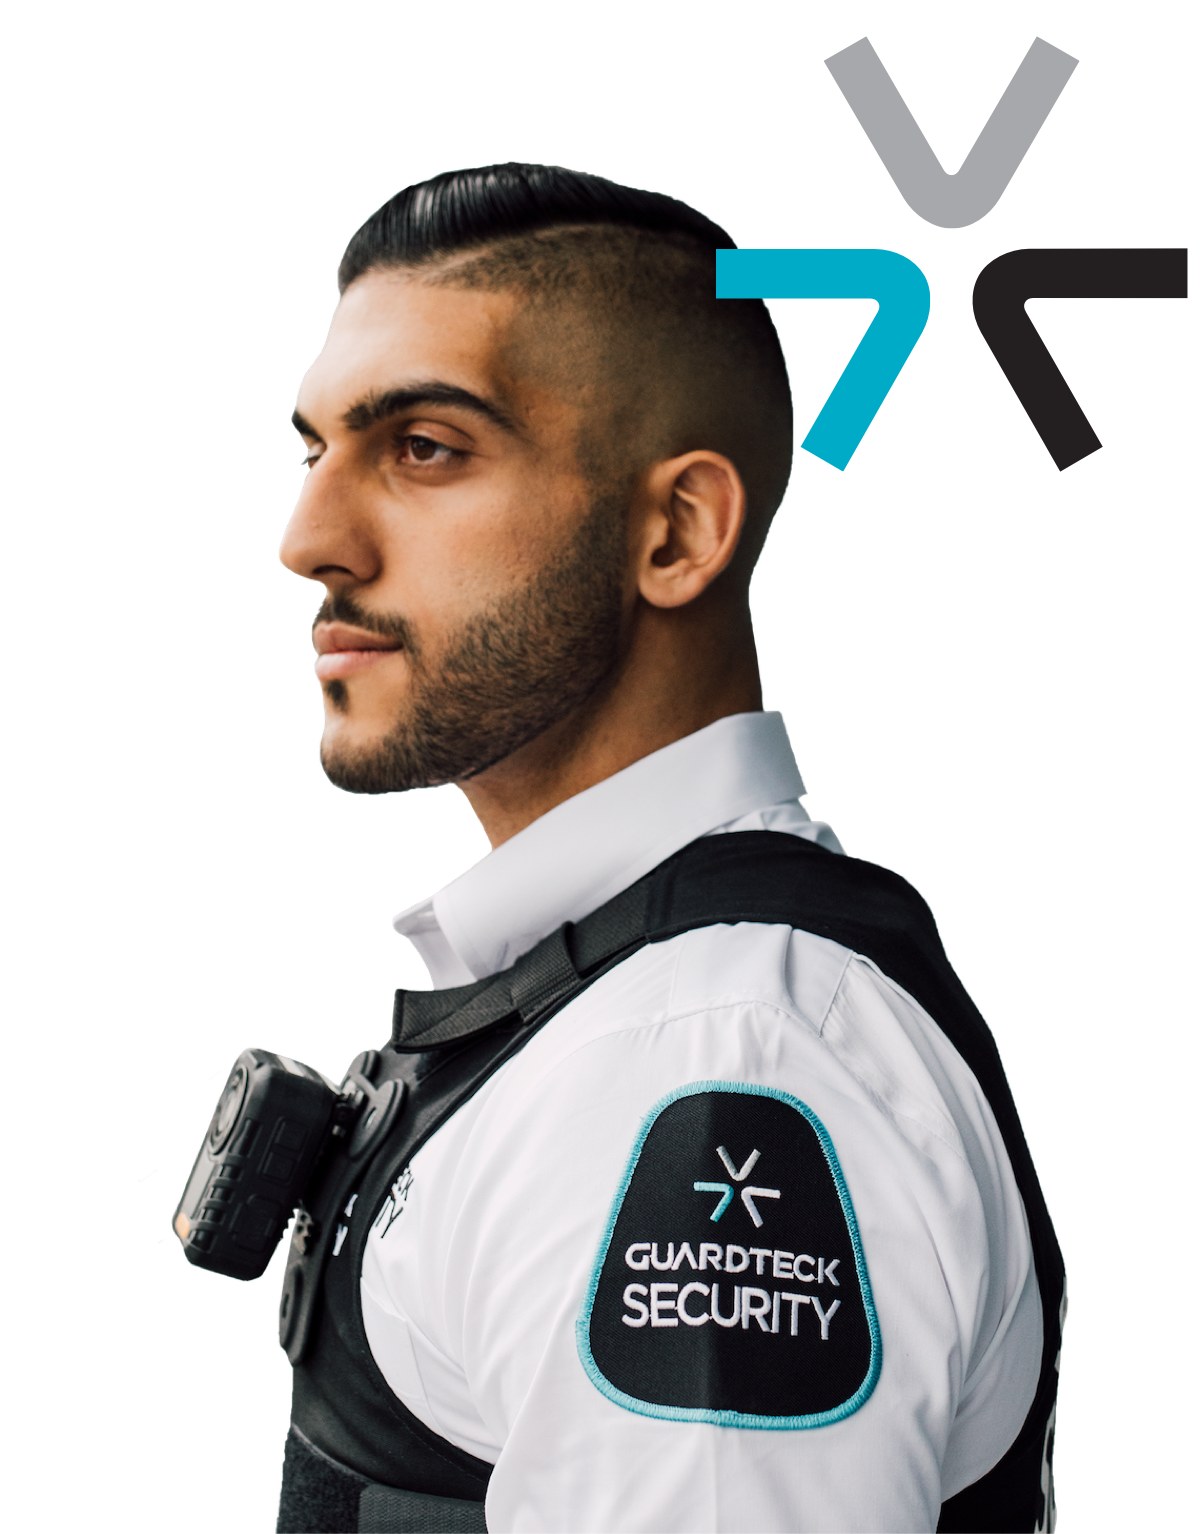 Guardteck employee performing security for mall and retail store fronts.